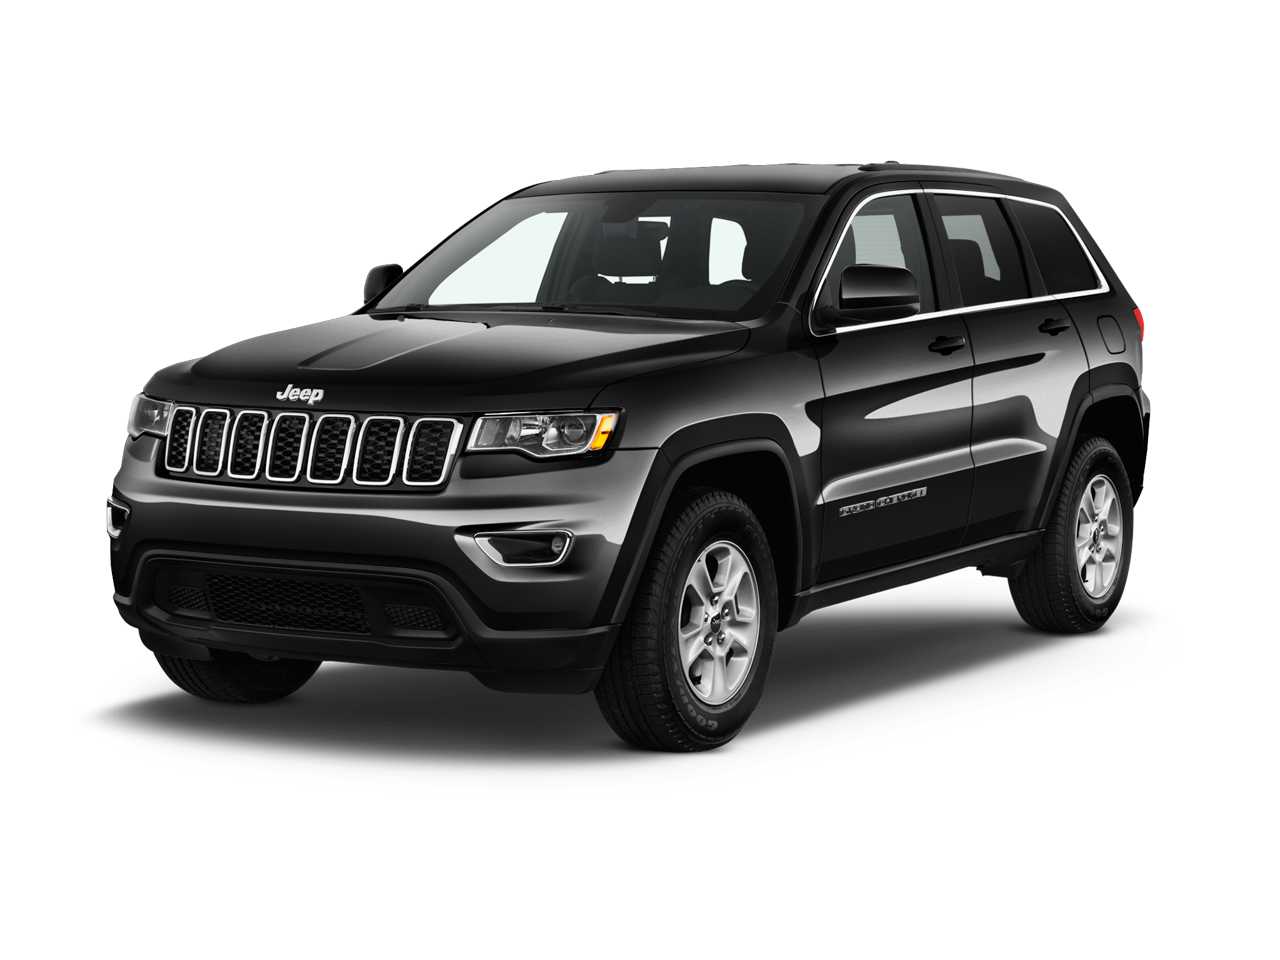 new 2017 jeep grand cherokee laredo near milwaukee wi russ darrow group. Black Bedroom Furniture Sets. Home Design Ideas